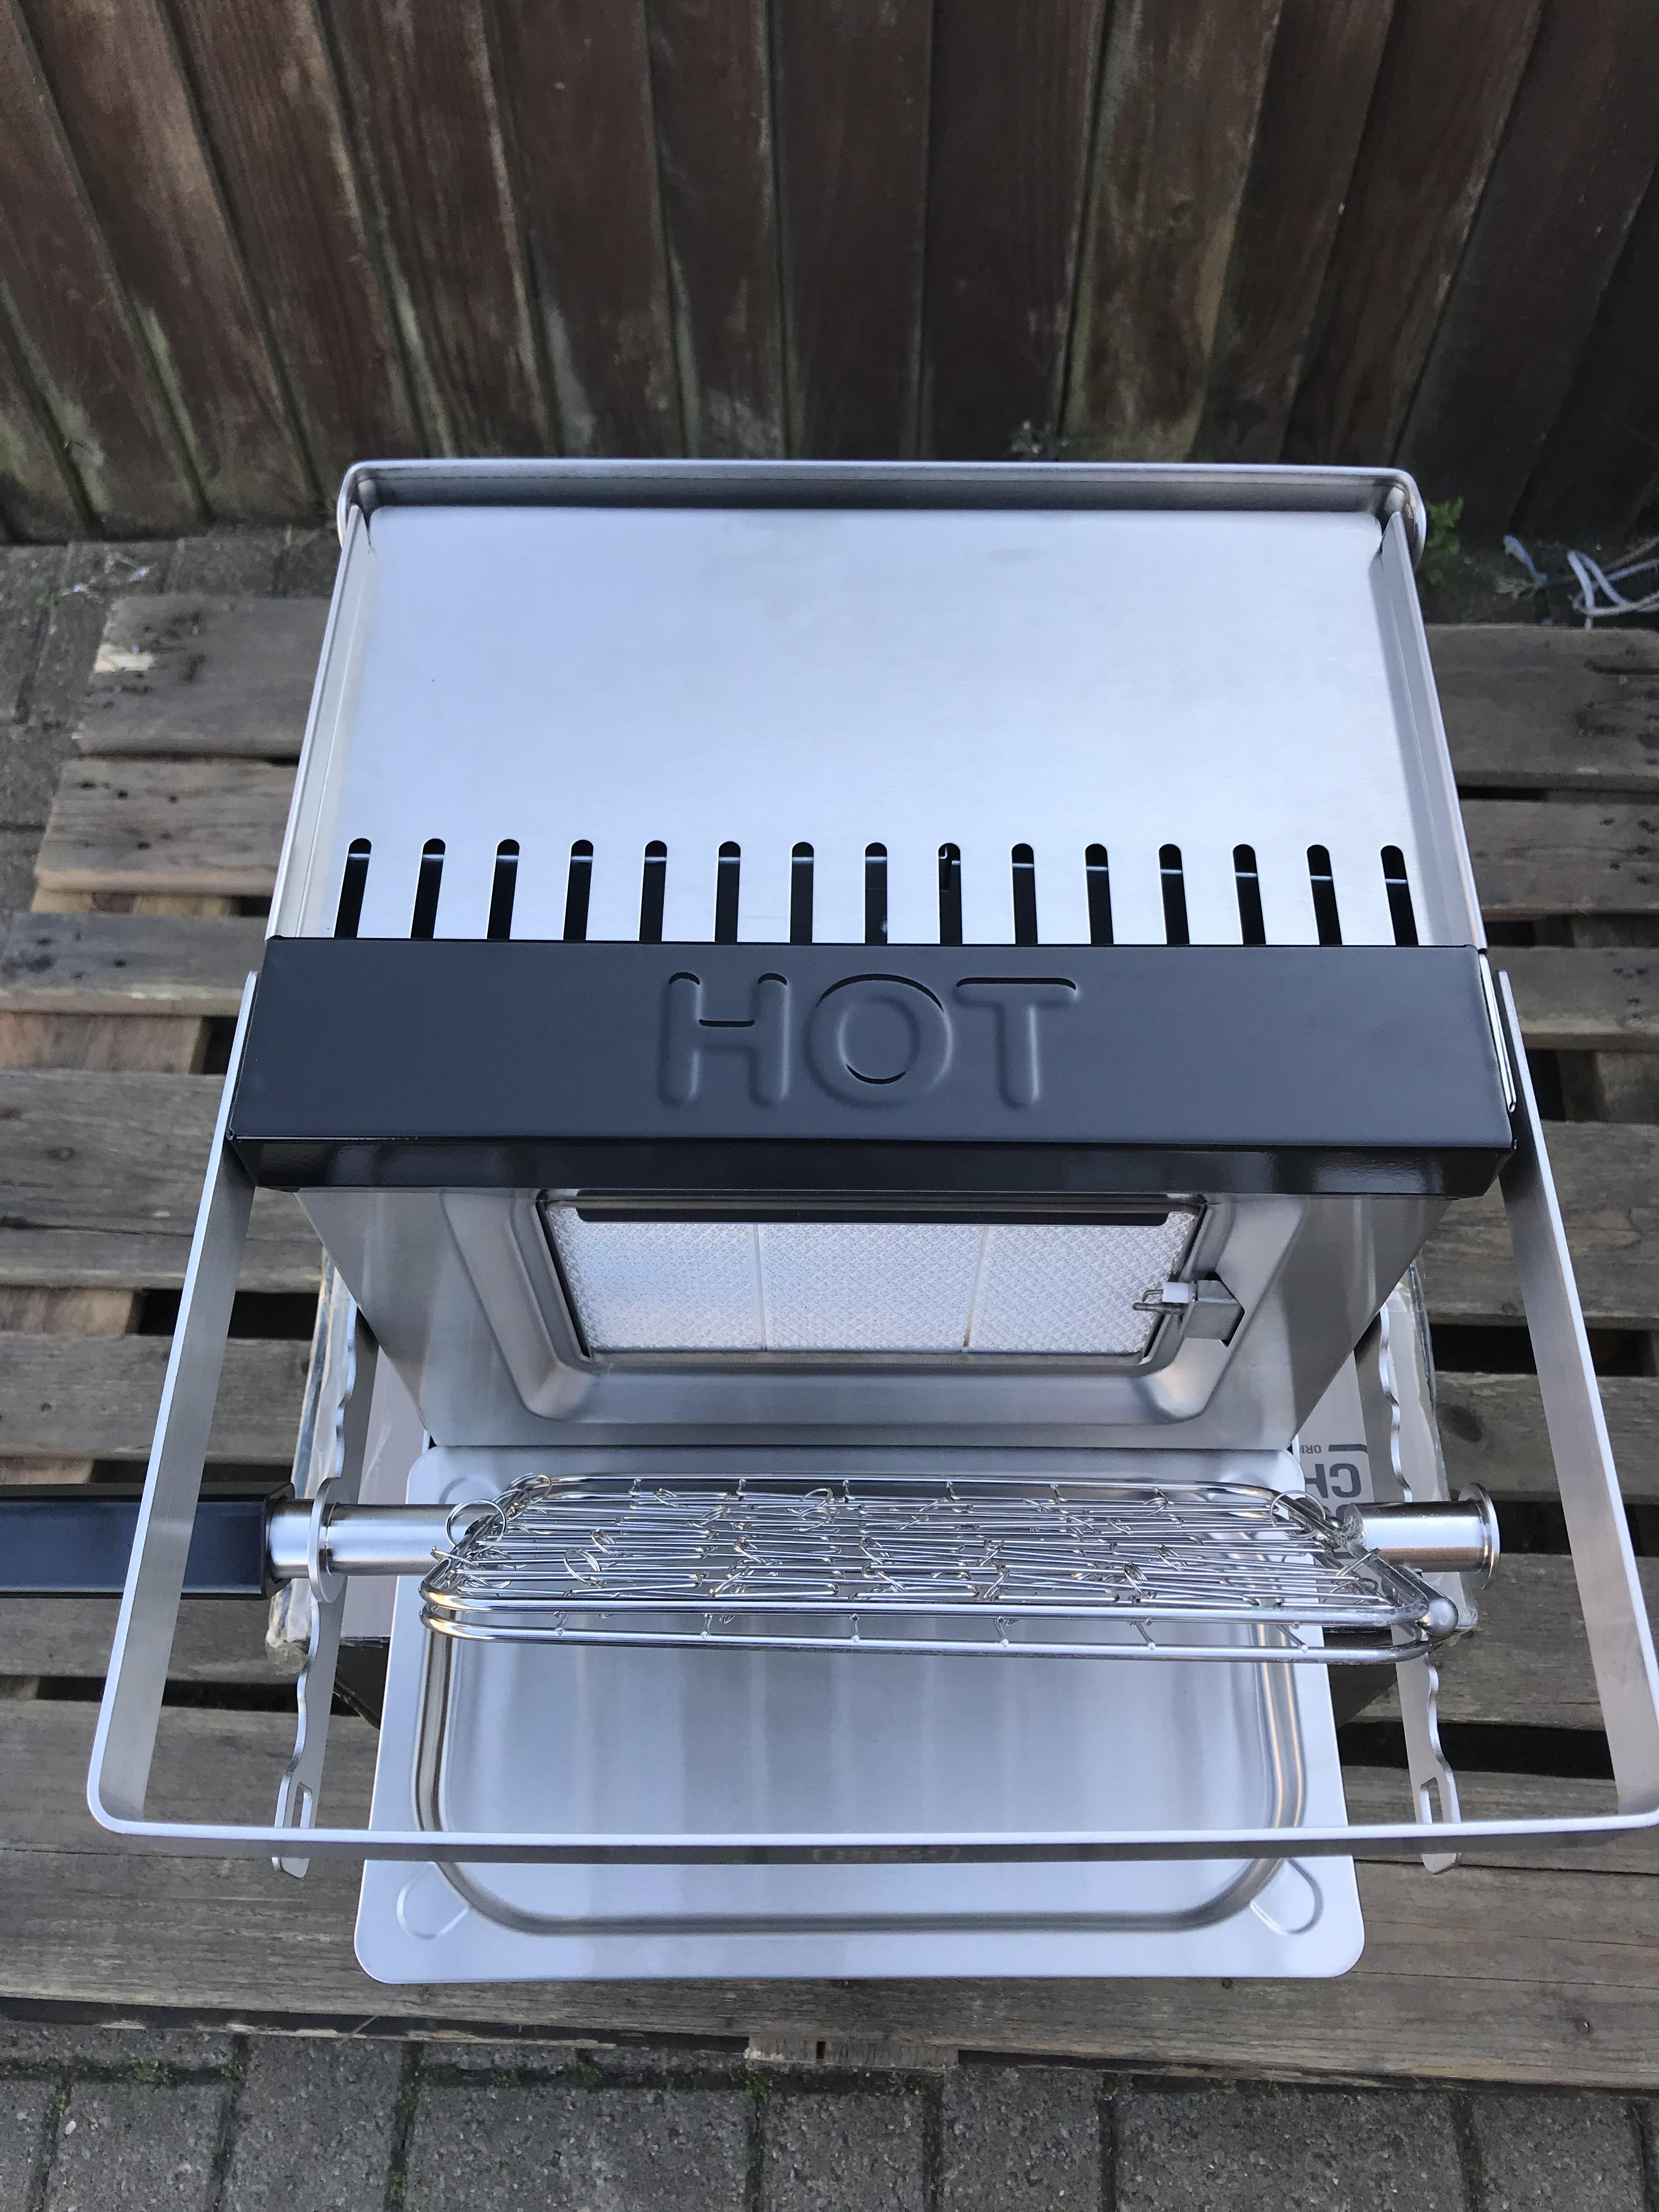 GOLD CHEF TWO 800C ROTISSERIE GRILL - Image 6 of 6